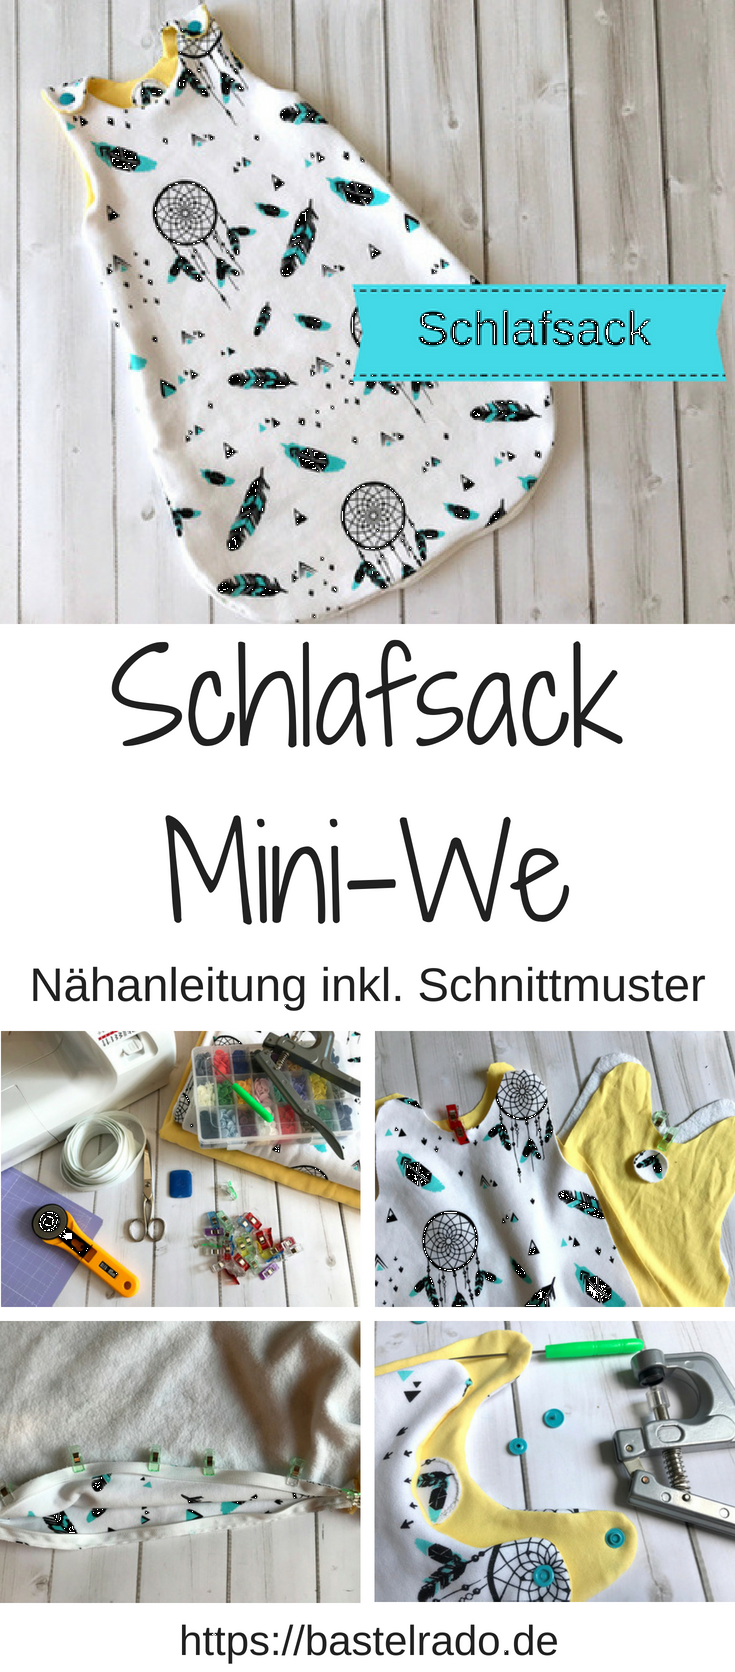 schlafsack mini we n hanleitung inkl schnittmuster b pinterest baby knitting patterns. Black Bedroom Furniture Sets. Home Design Ideas